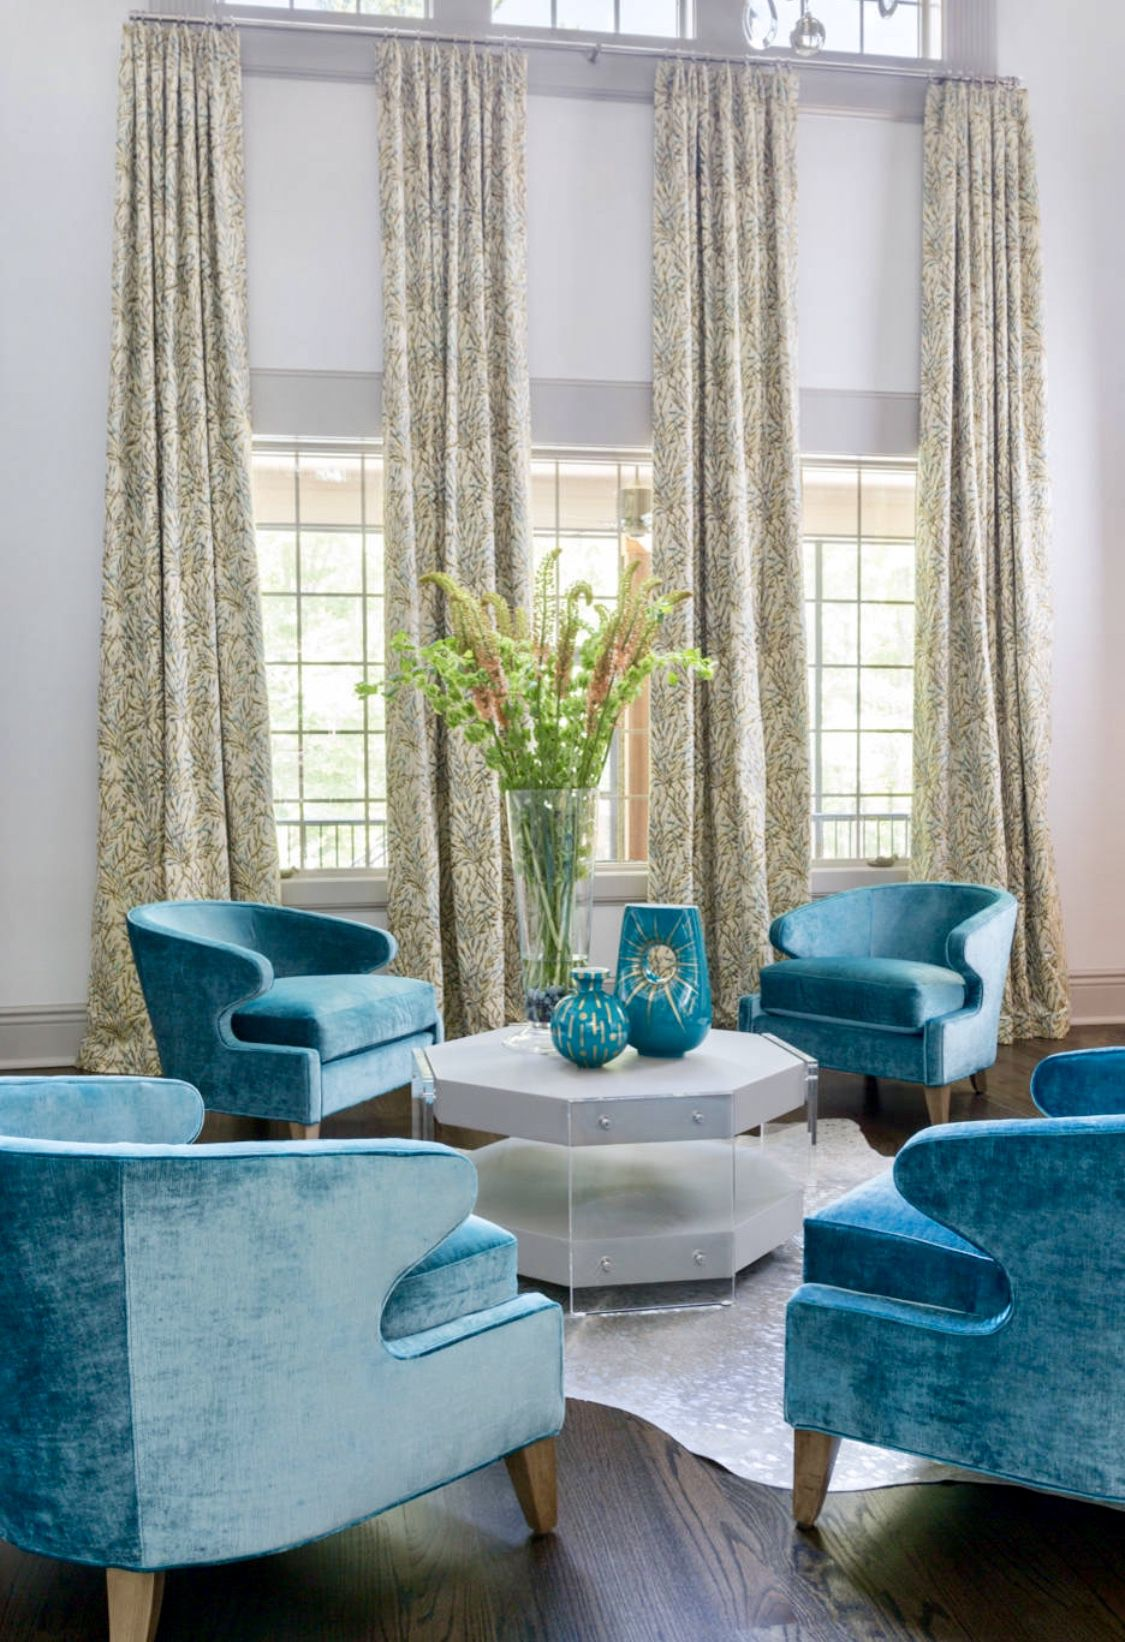 Gorgeous Turquoise Living Room Decor Living Room Turquoise Turquoise Living Room Decor Scandinavian Design Living Room